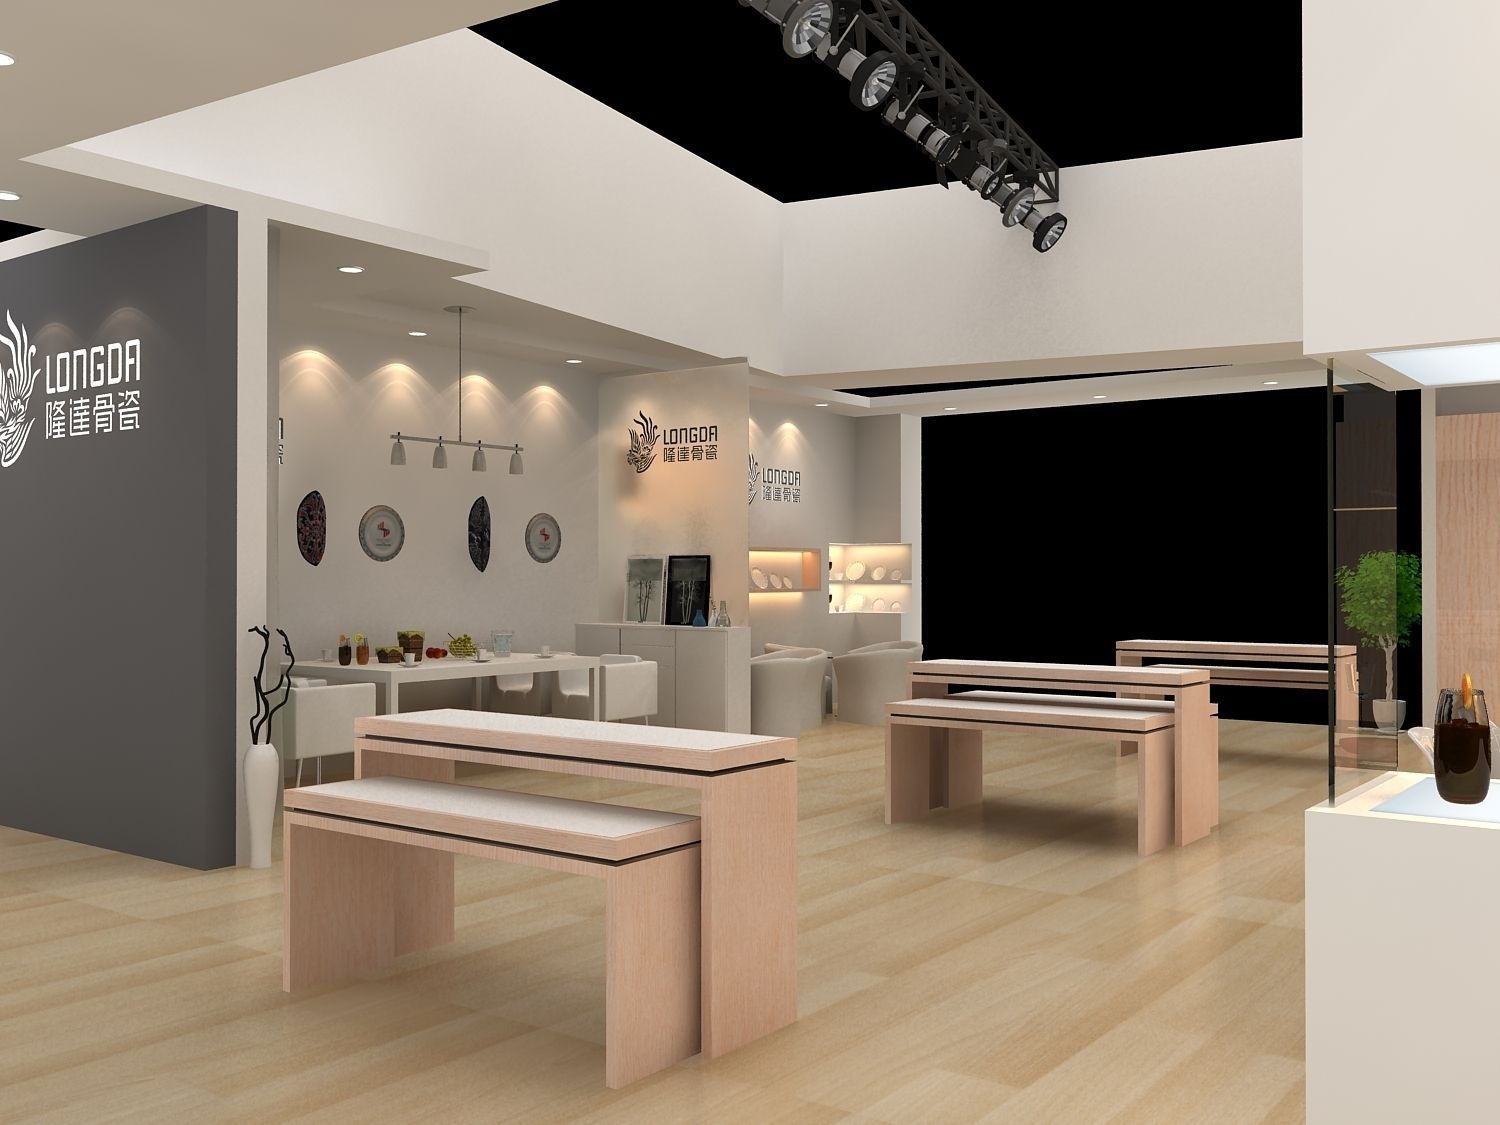 Exhibition Stand Design Jobs London : Exhibition area dmax d model max cgtrader